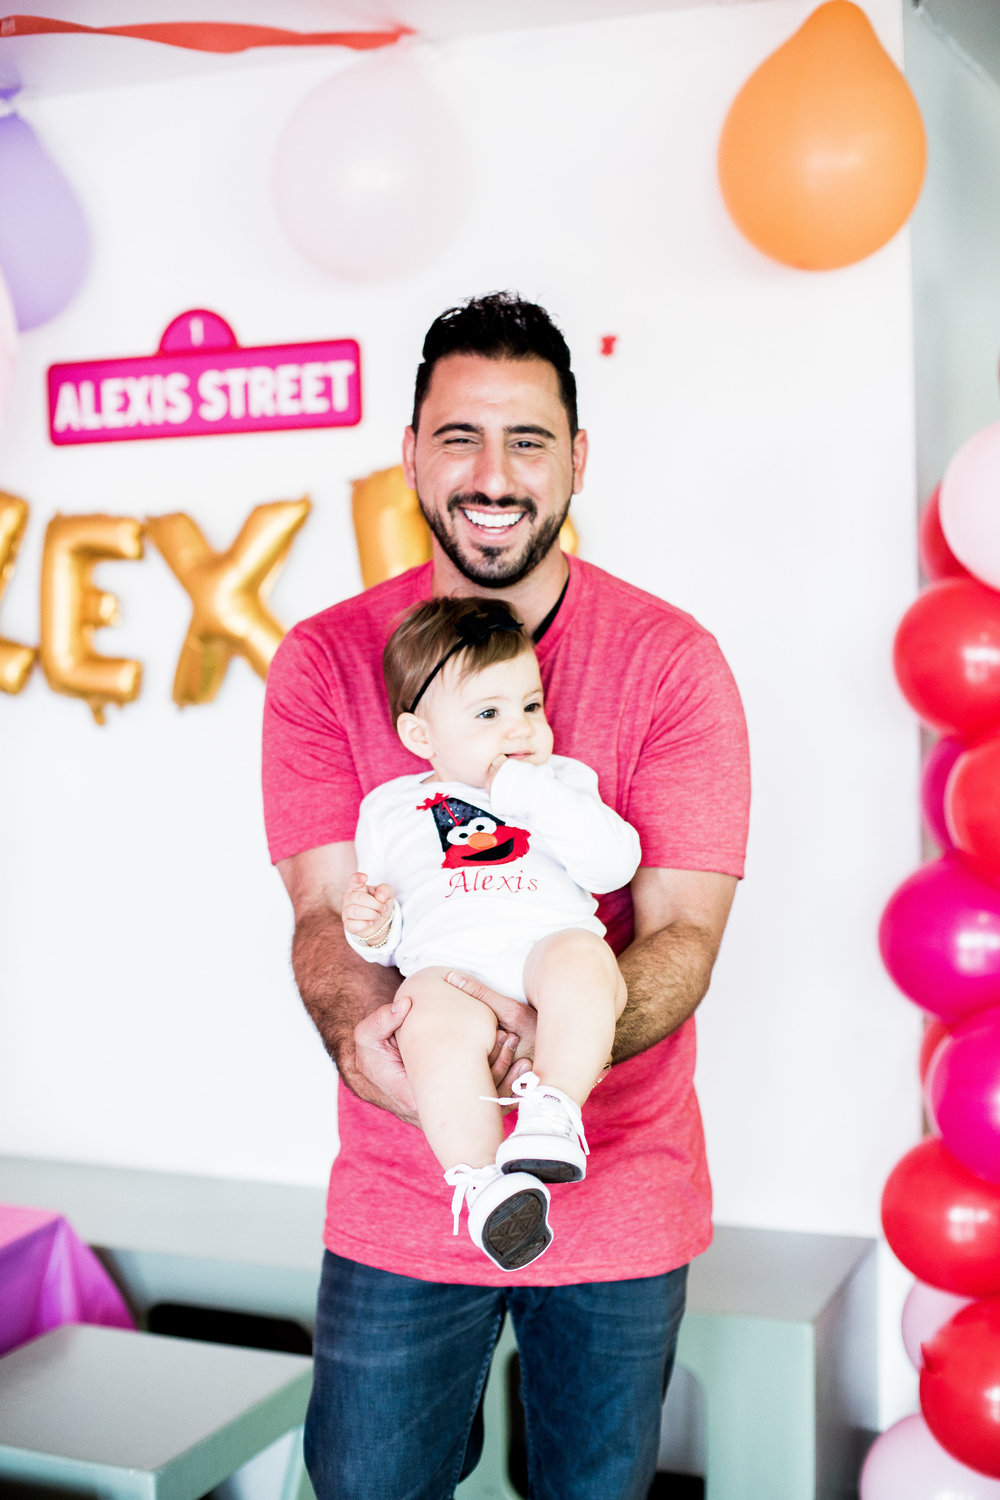 Alexis'_1st_Birthday_04.07.18_-71.jpg